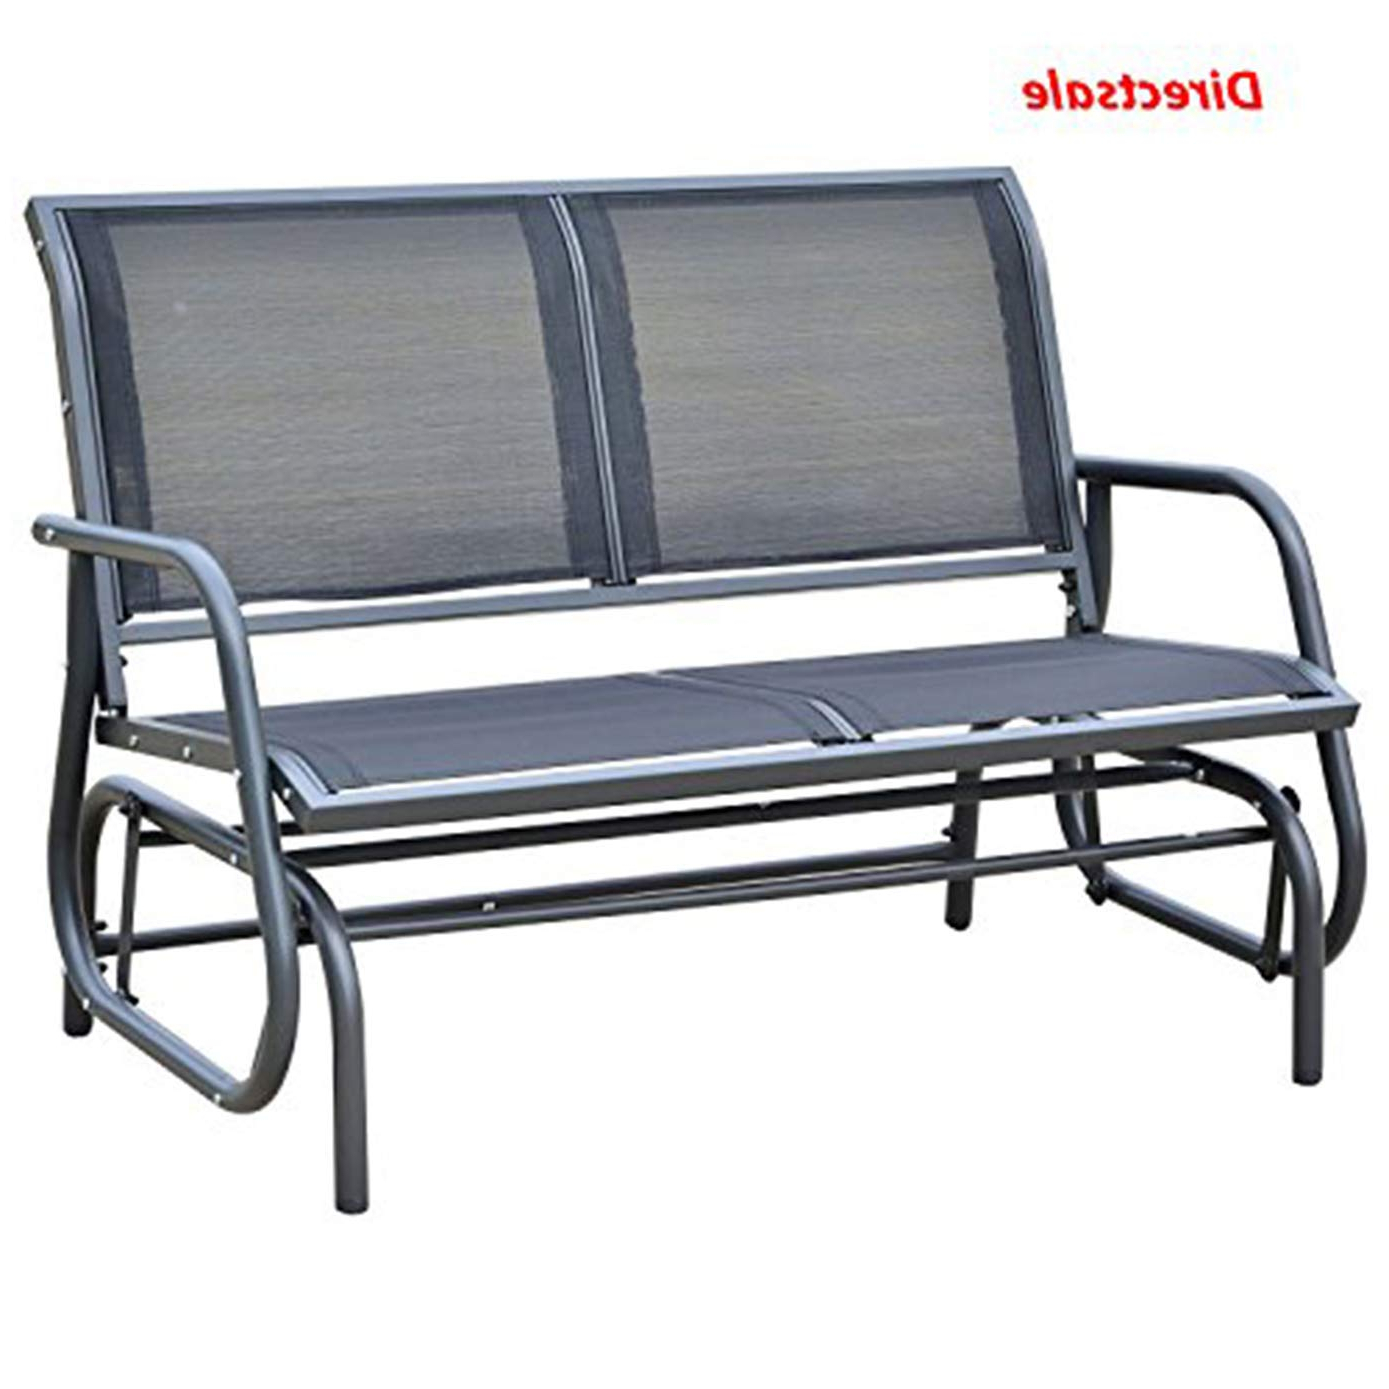 Newest Amazon : Directsale Patio Double 2 Person Glider Bench Inside Double Glider Benches With Cushion (View 5 of 30)